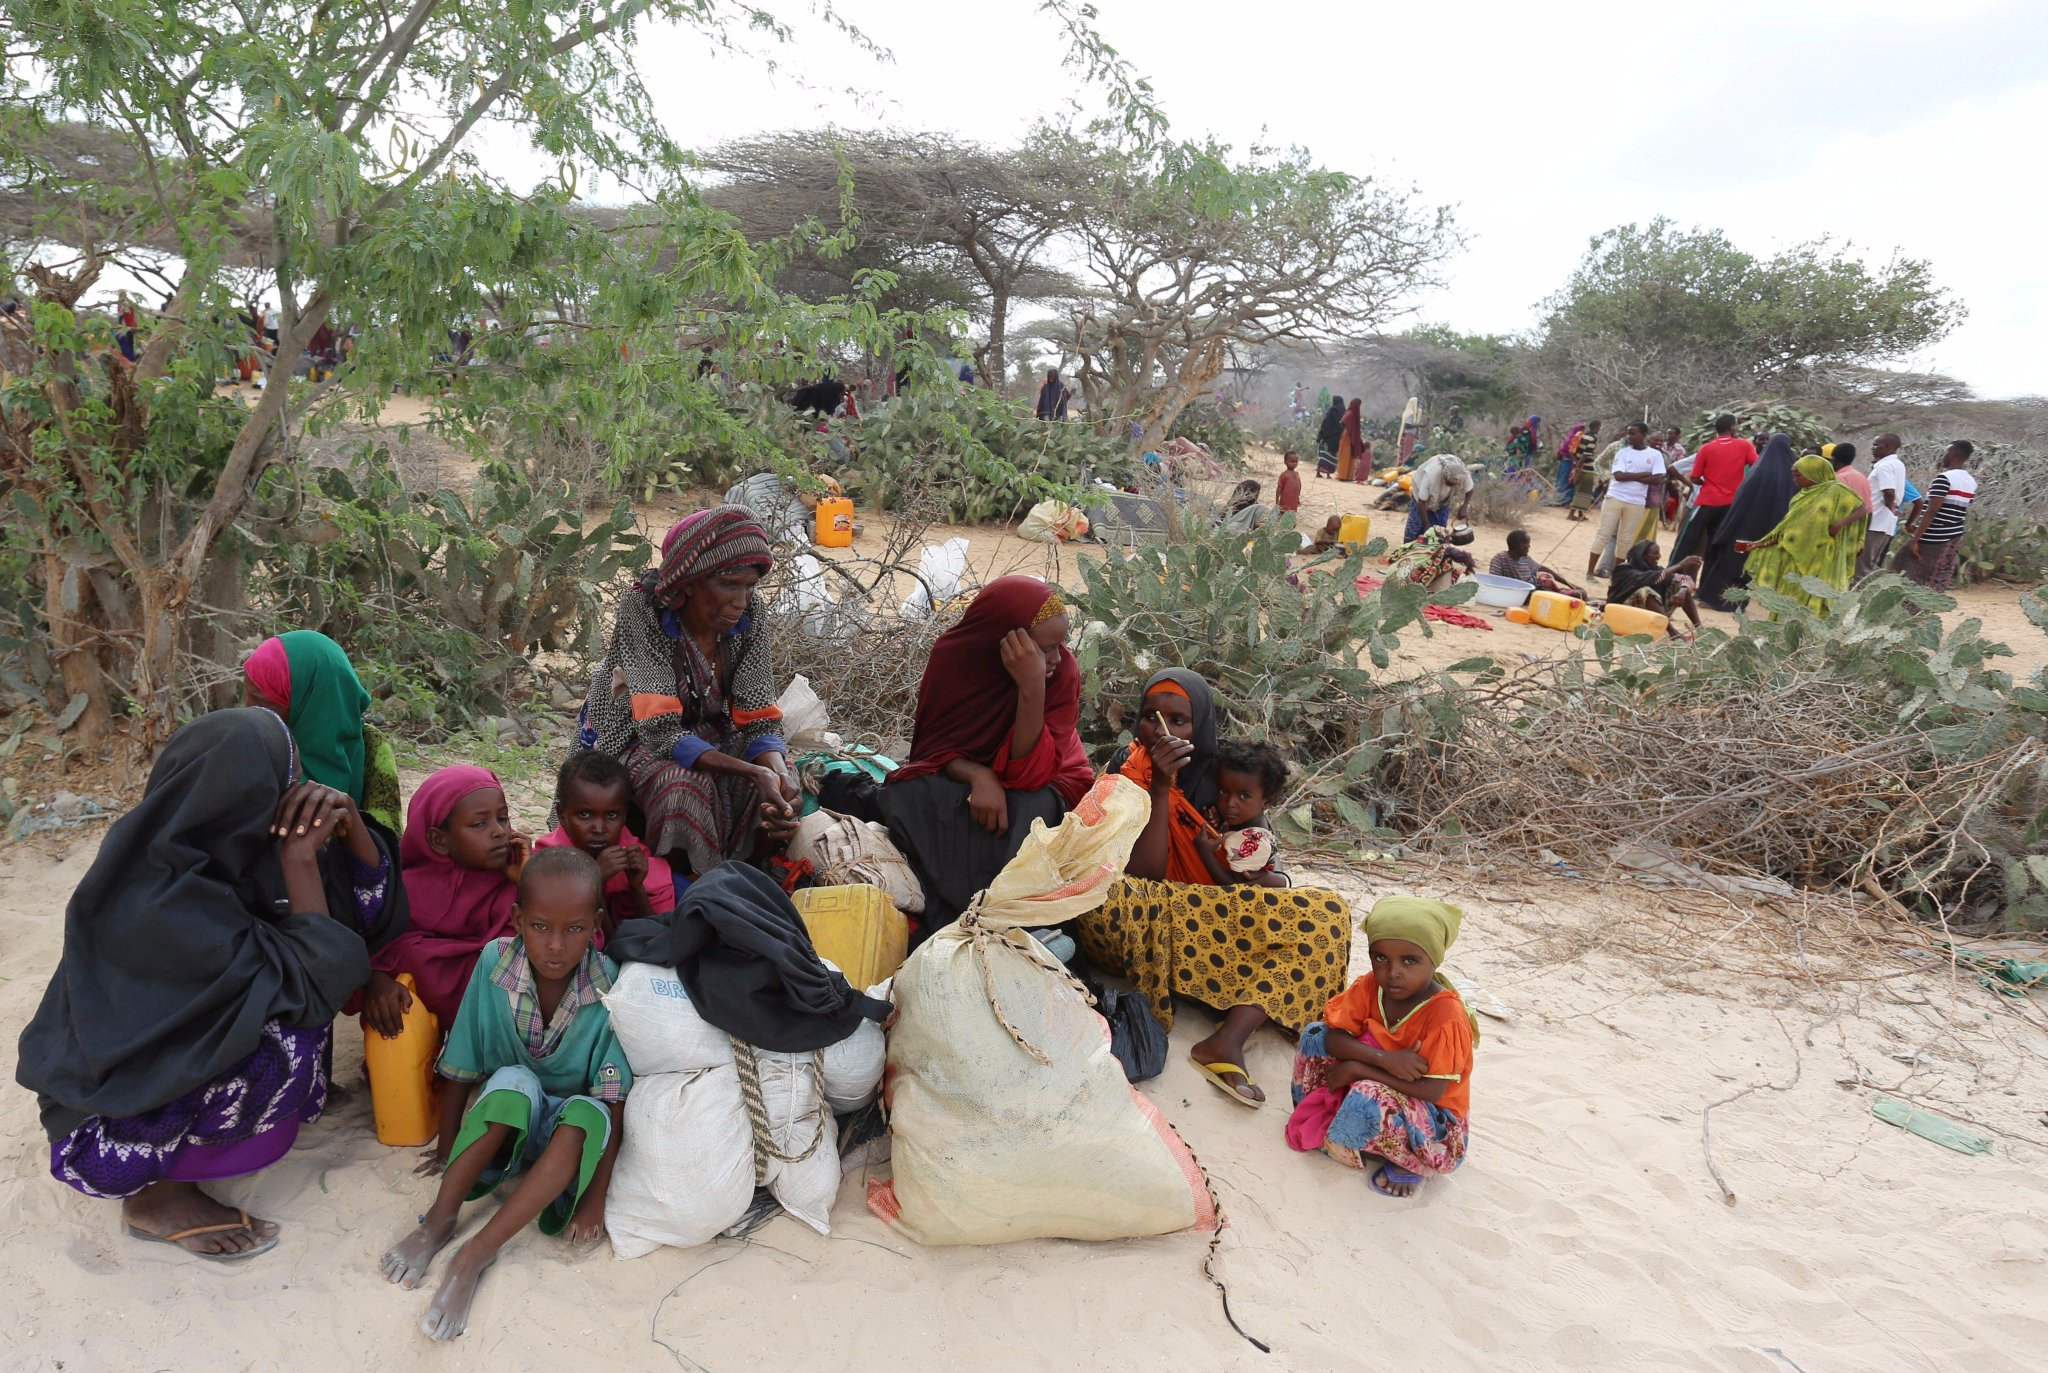 Thumbnail for Thousands Flee Attacks in Somalia: HRW Brief